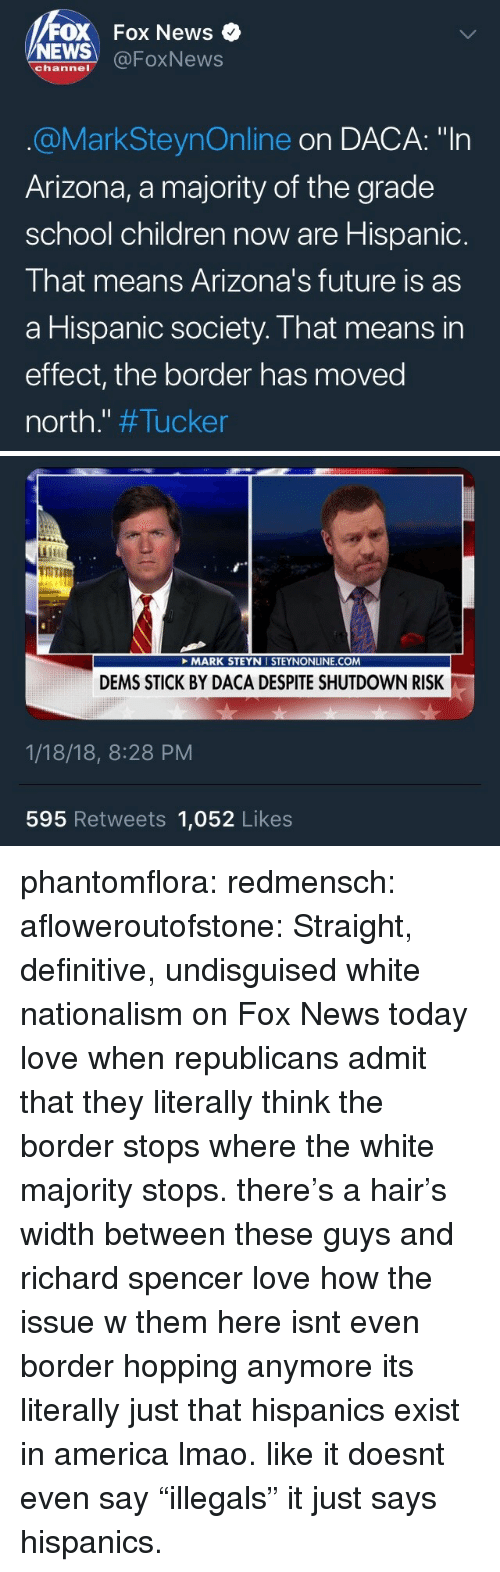 """America, Children, and Future: FOX Fox News  NEWS @FoxNews  channel  @MarkSteynOnline on DACA: """"In  Arizona, a majority of the grade  school children now are Hispanic.  That means Arizona's future is as  a Hispanic society. That means in  effect, the border has moved  north."""" #Tucker   TOT  it  MARK STEYN I STEYNONLINE.COM  DEMS STICK BY DACA DESPITE SHUTDOWN RISK  1/18/18, 8:28 PM  595 Retweets 1,052 Likes phantomflora: redmensch:  afloweroutofstone: Straight, definitive, undisguised white nationalism on Fox News today love when republicans admit that they literally think the border stops where the white majority stops. there's a hair's width between these guys and richard spencer   love how the issue w them here isnt even border hopping anymore its literally just that hispanics exist in america lmao. like it doesnt even say """"illegals"""" it just says hispanics."""